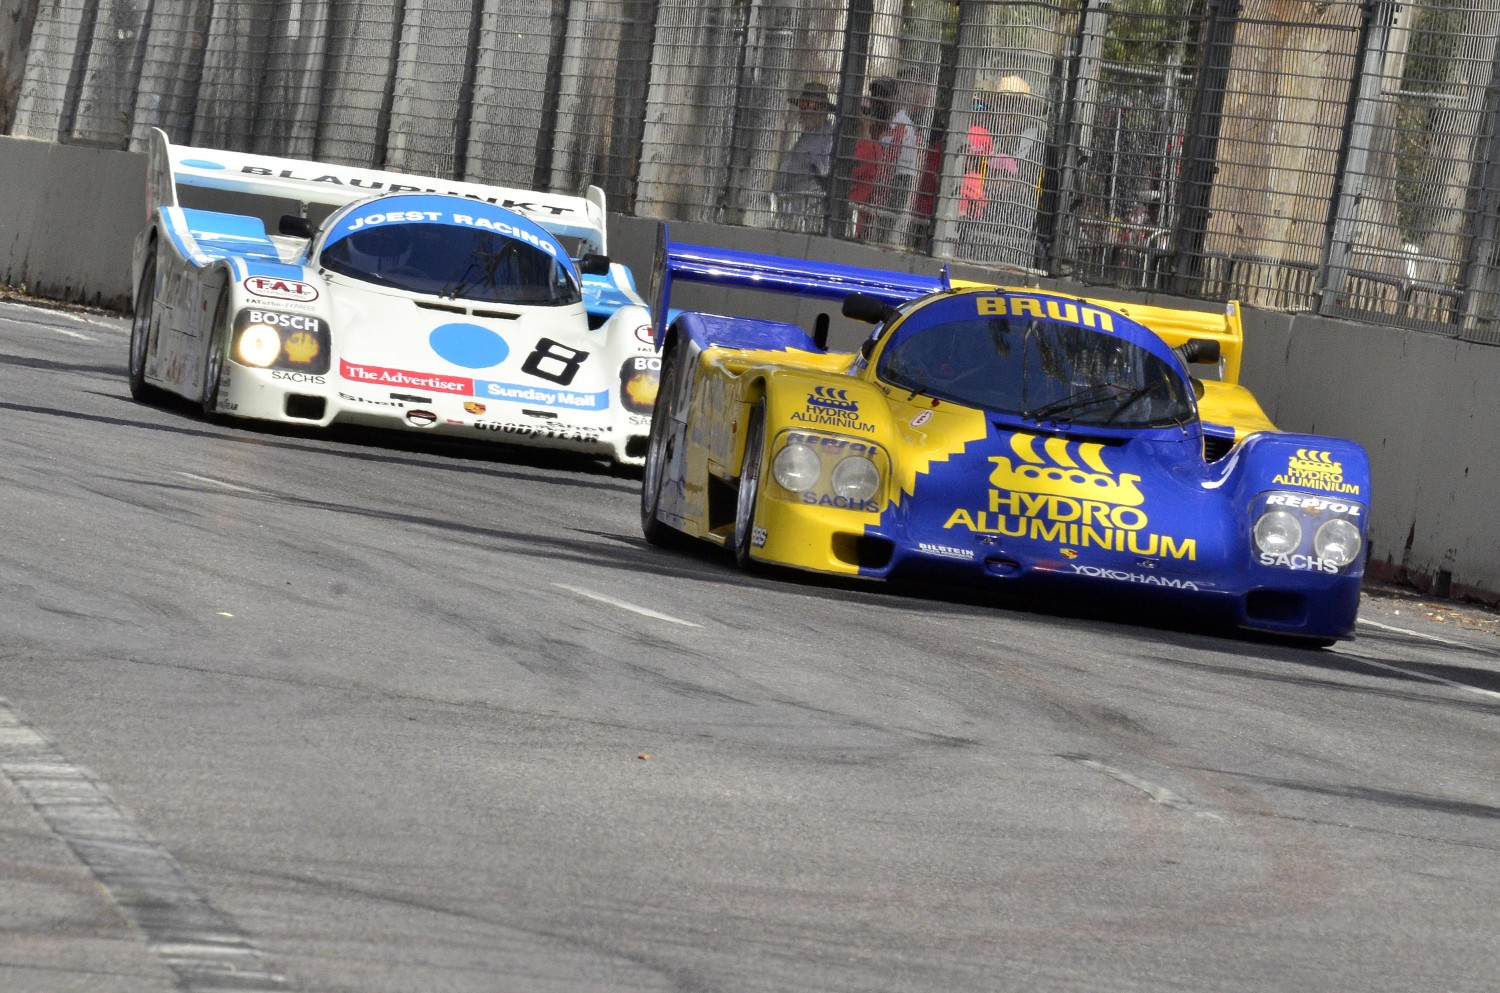 Classic Group C cars confirmed for Bathurst 12 Hour weekend